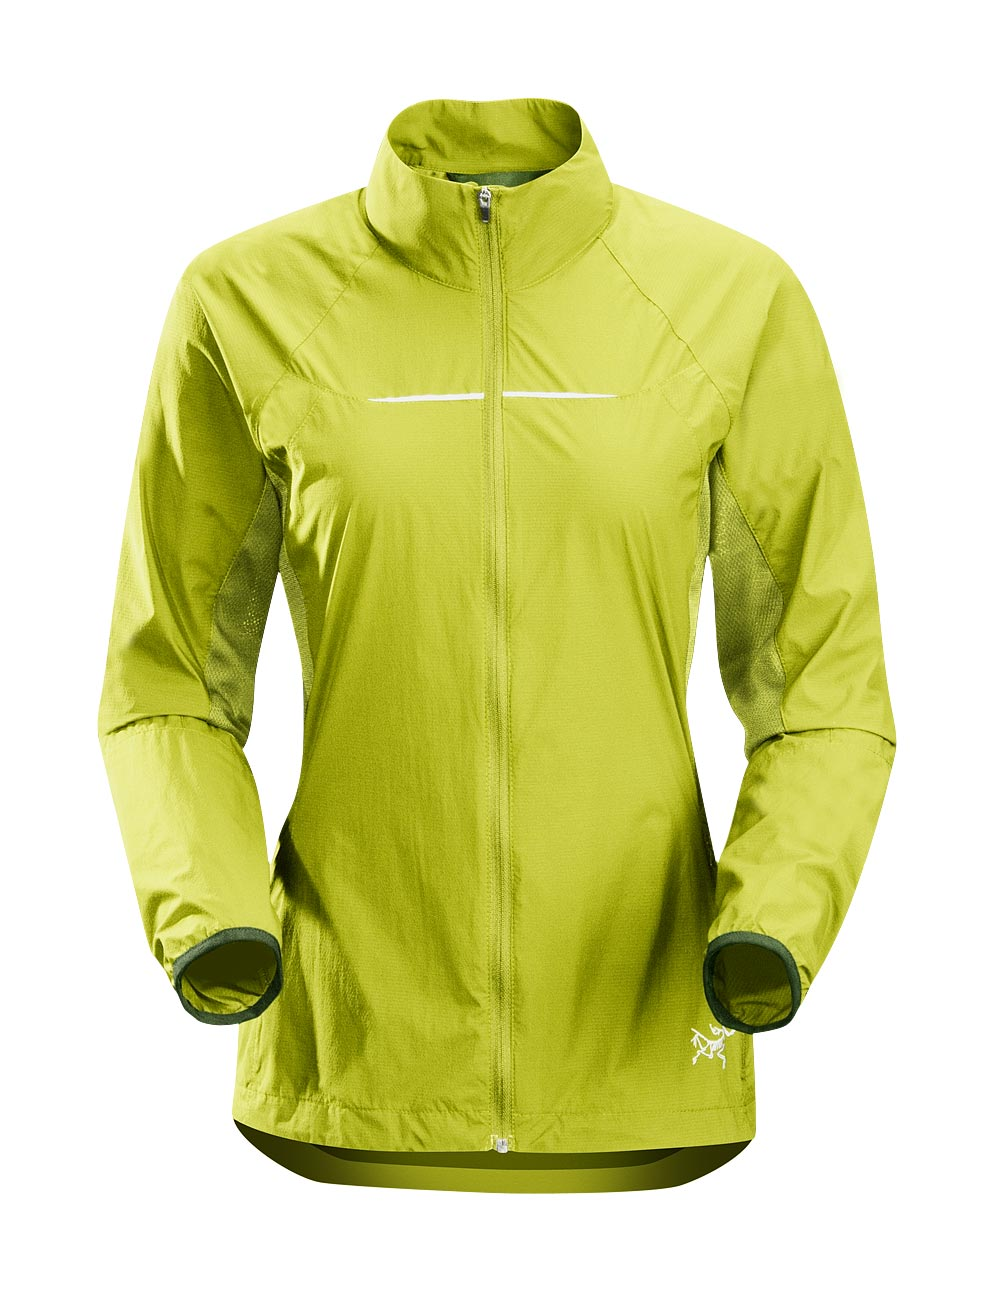 Arcteryx Jackets Women Chartreuse Cita Jacket - New